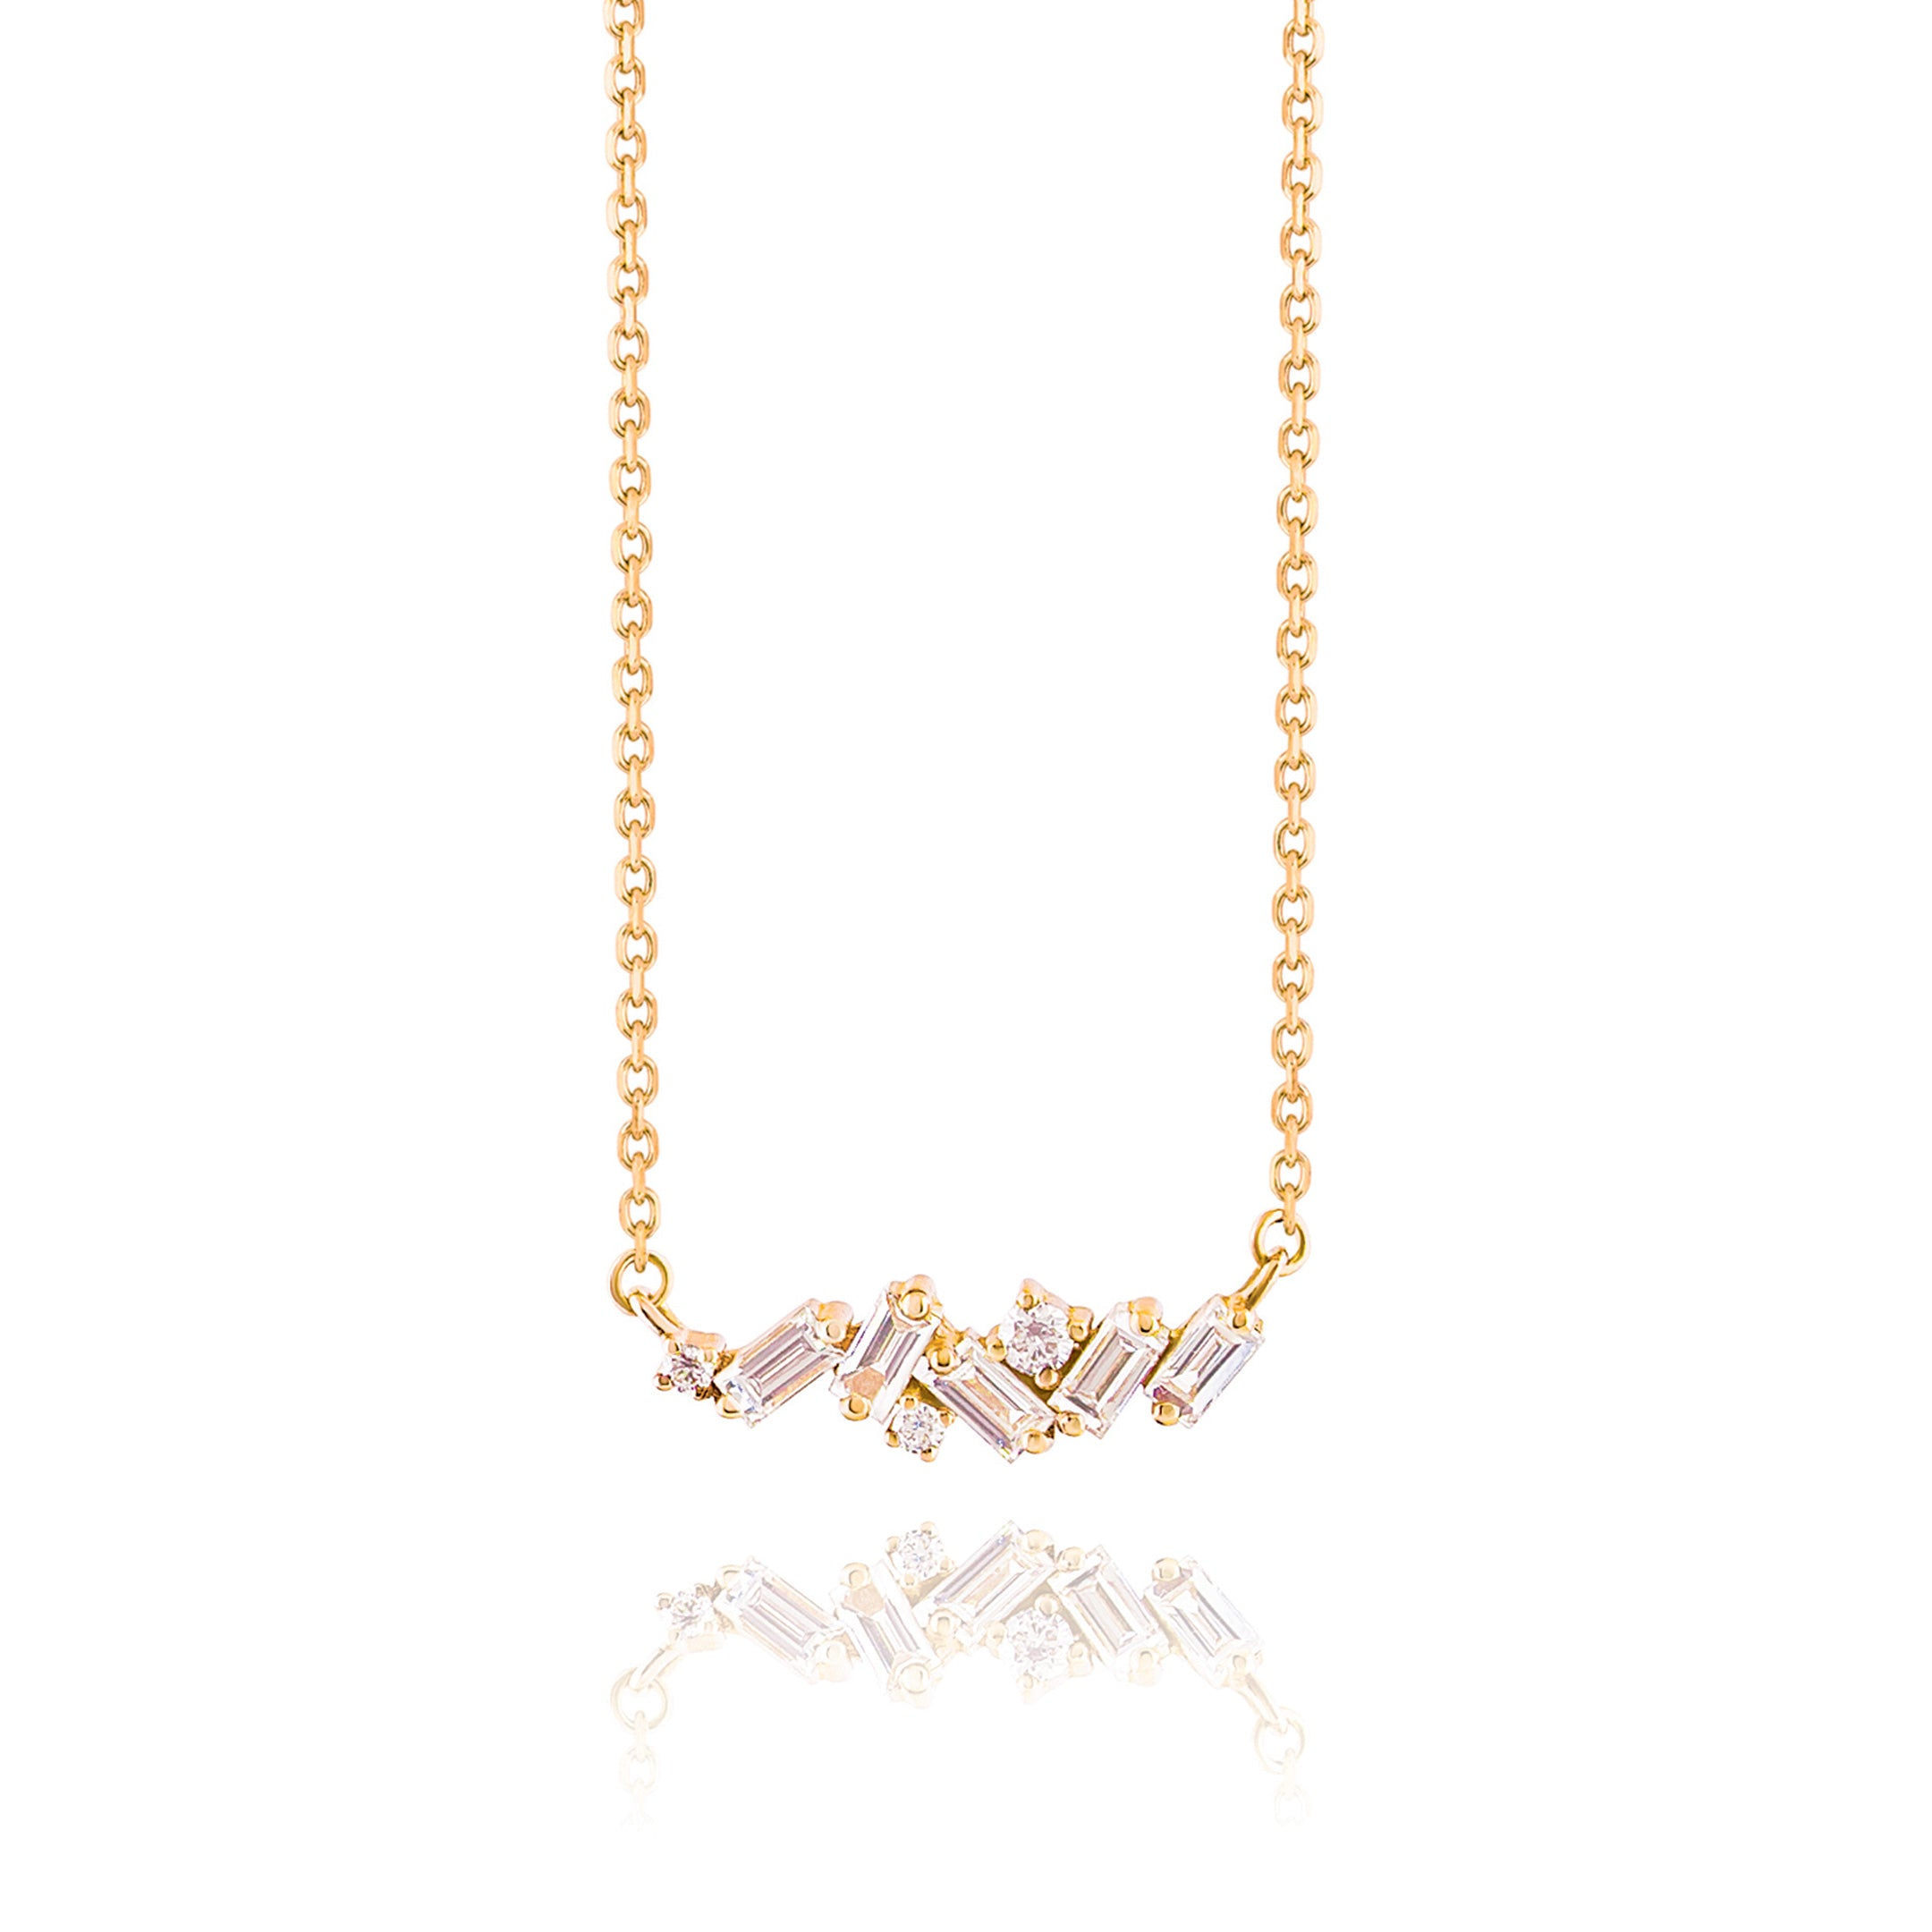 18K YELLOW GOLD FIREWORKS SMALL SPARKLER NECKLACE